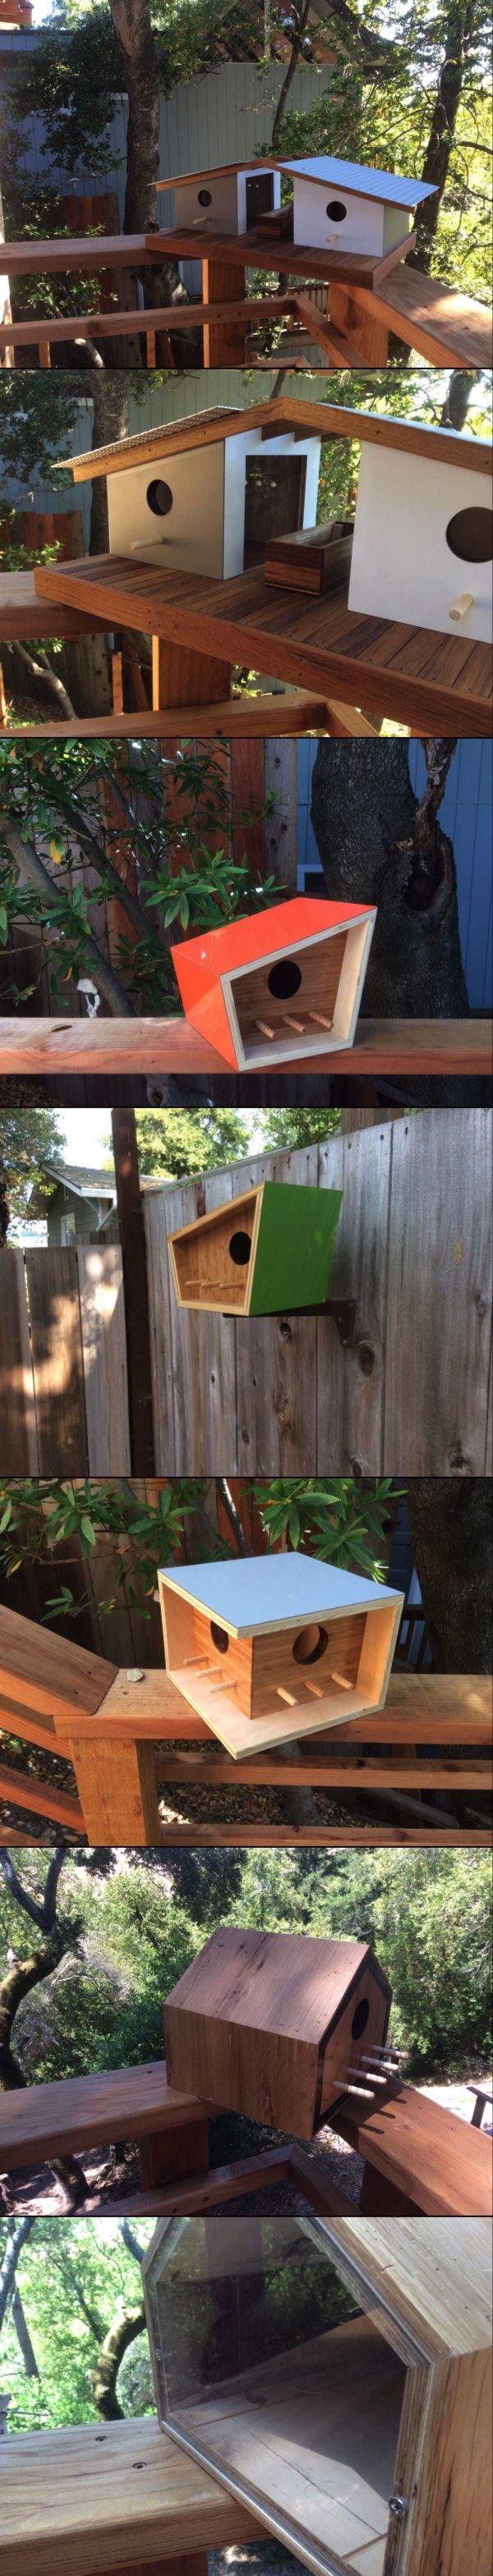 BIRDHOUSES THAT ARE COOLER THAN YOUR OWN HOUSE